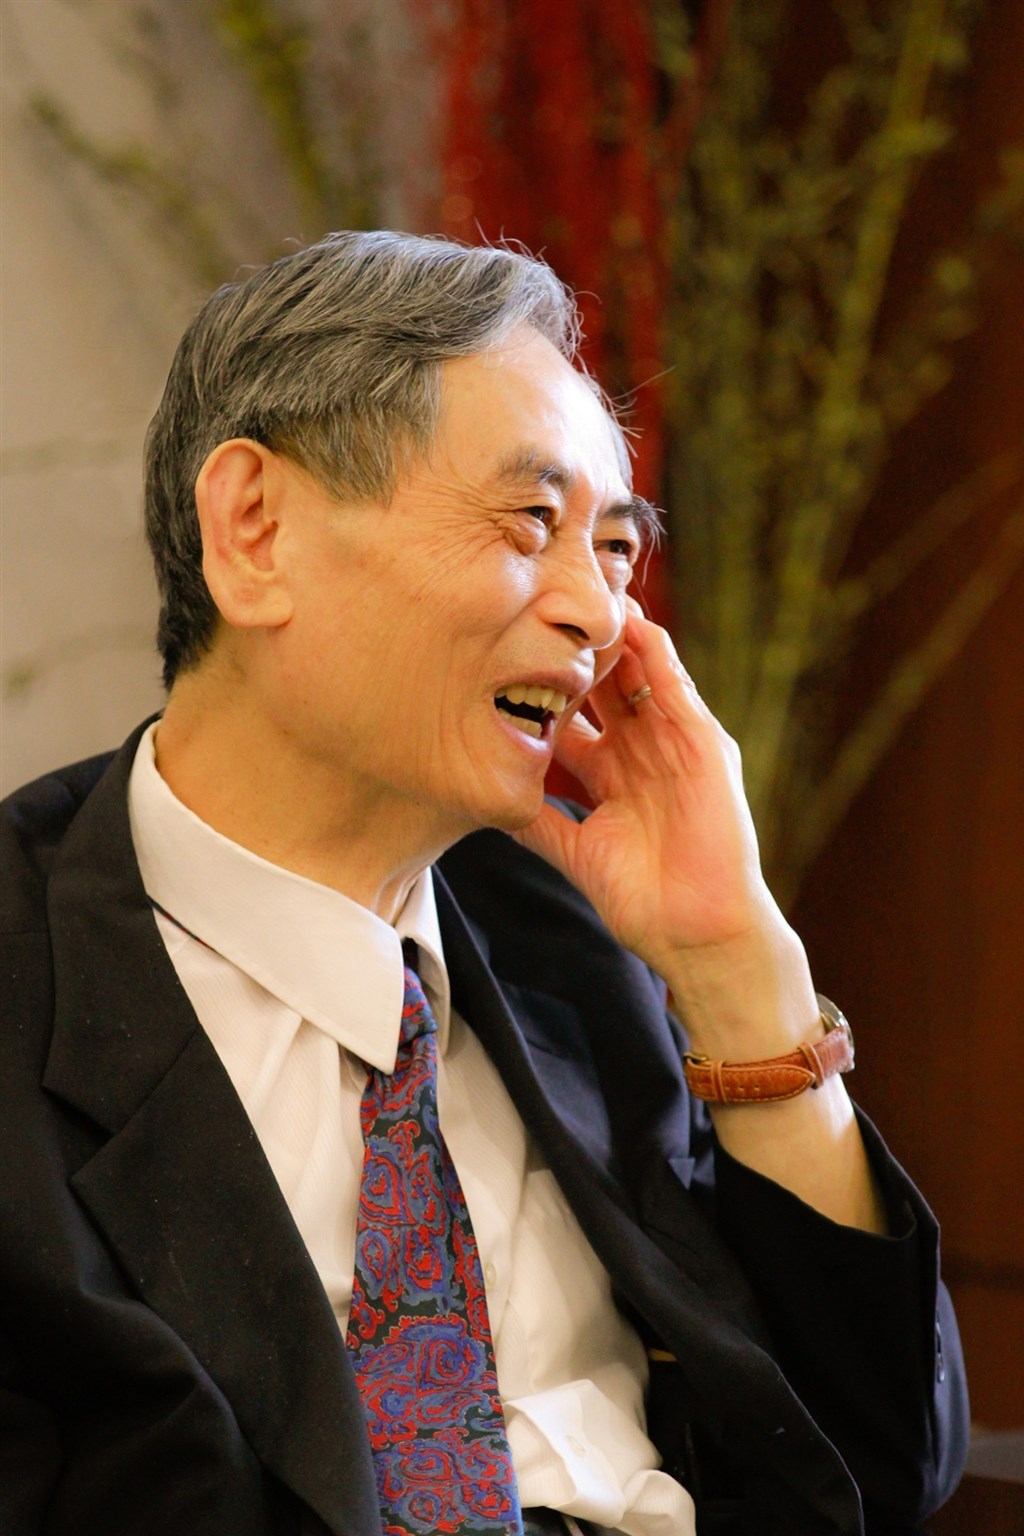 Academia Sinica academician Chen Sow-hsin. Photo from National Tsing Hua University